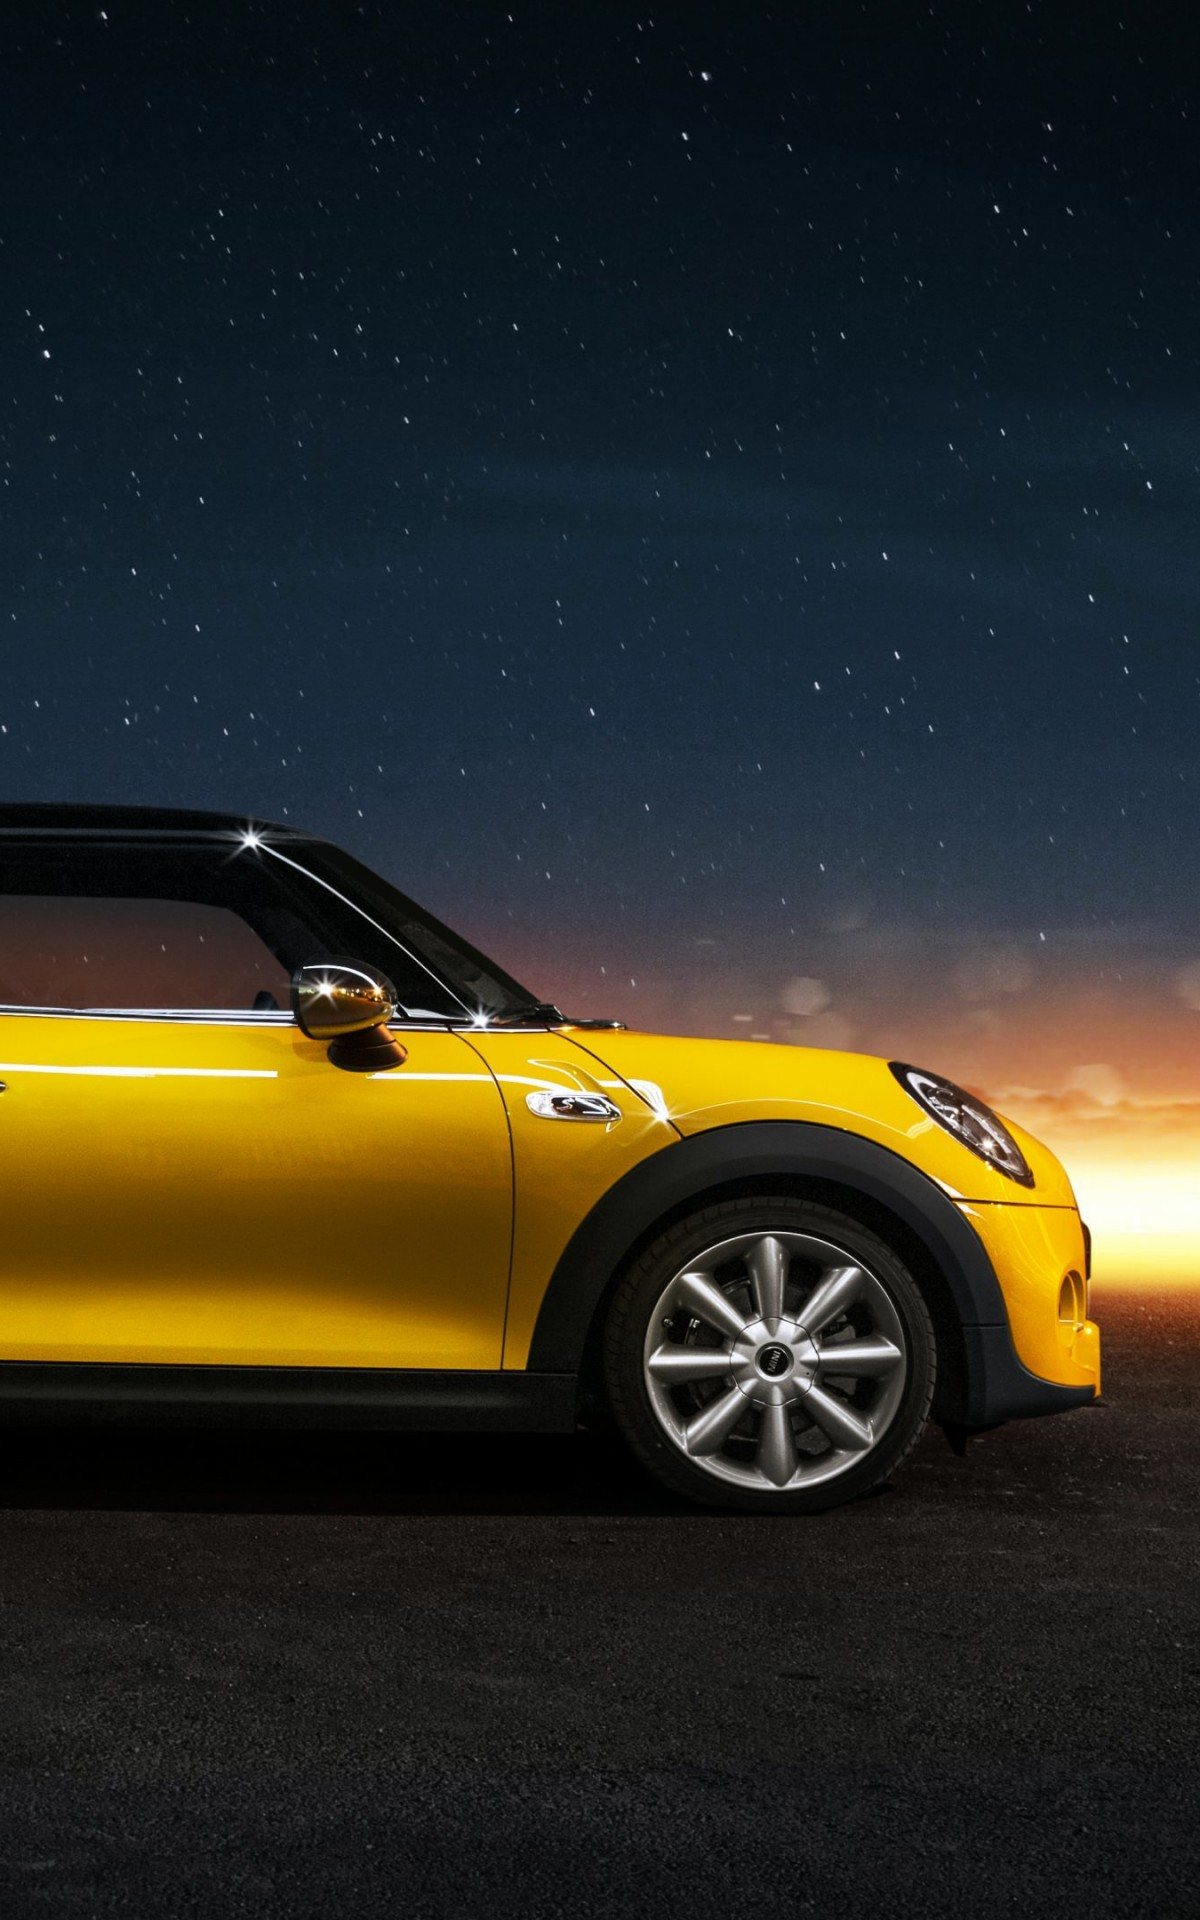 Yellow Mini Cooper S Wallpaper for Amazon Kindle Fire HDX